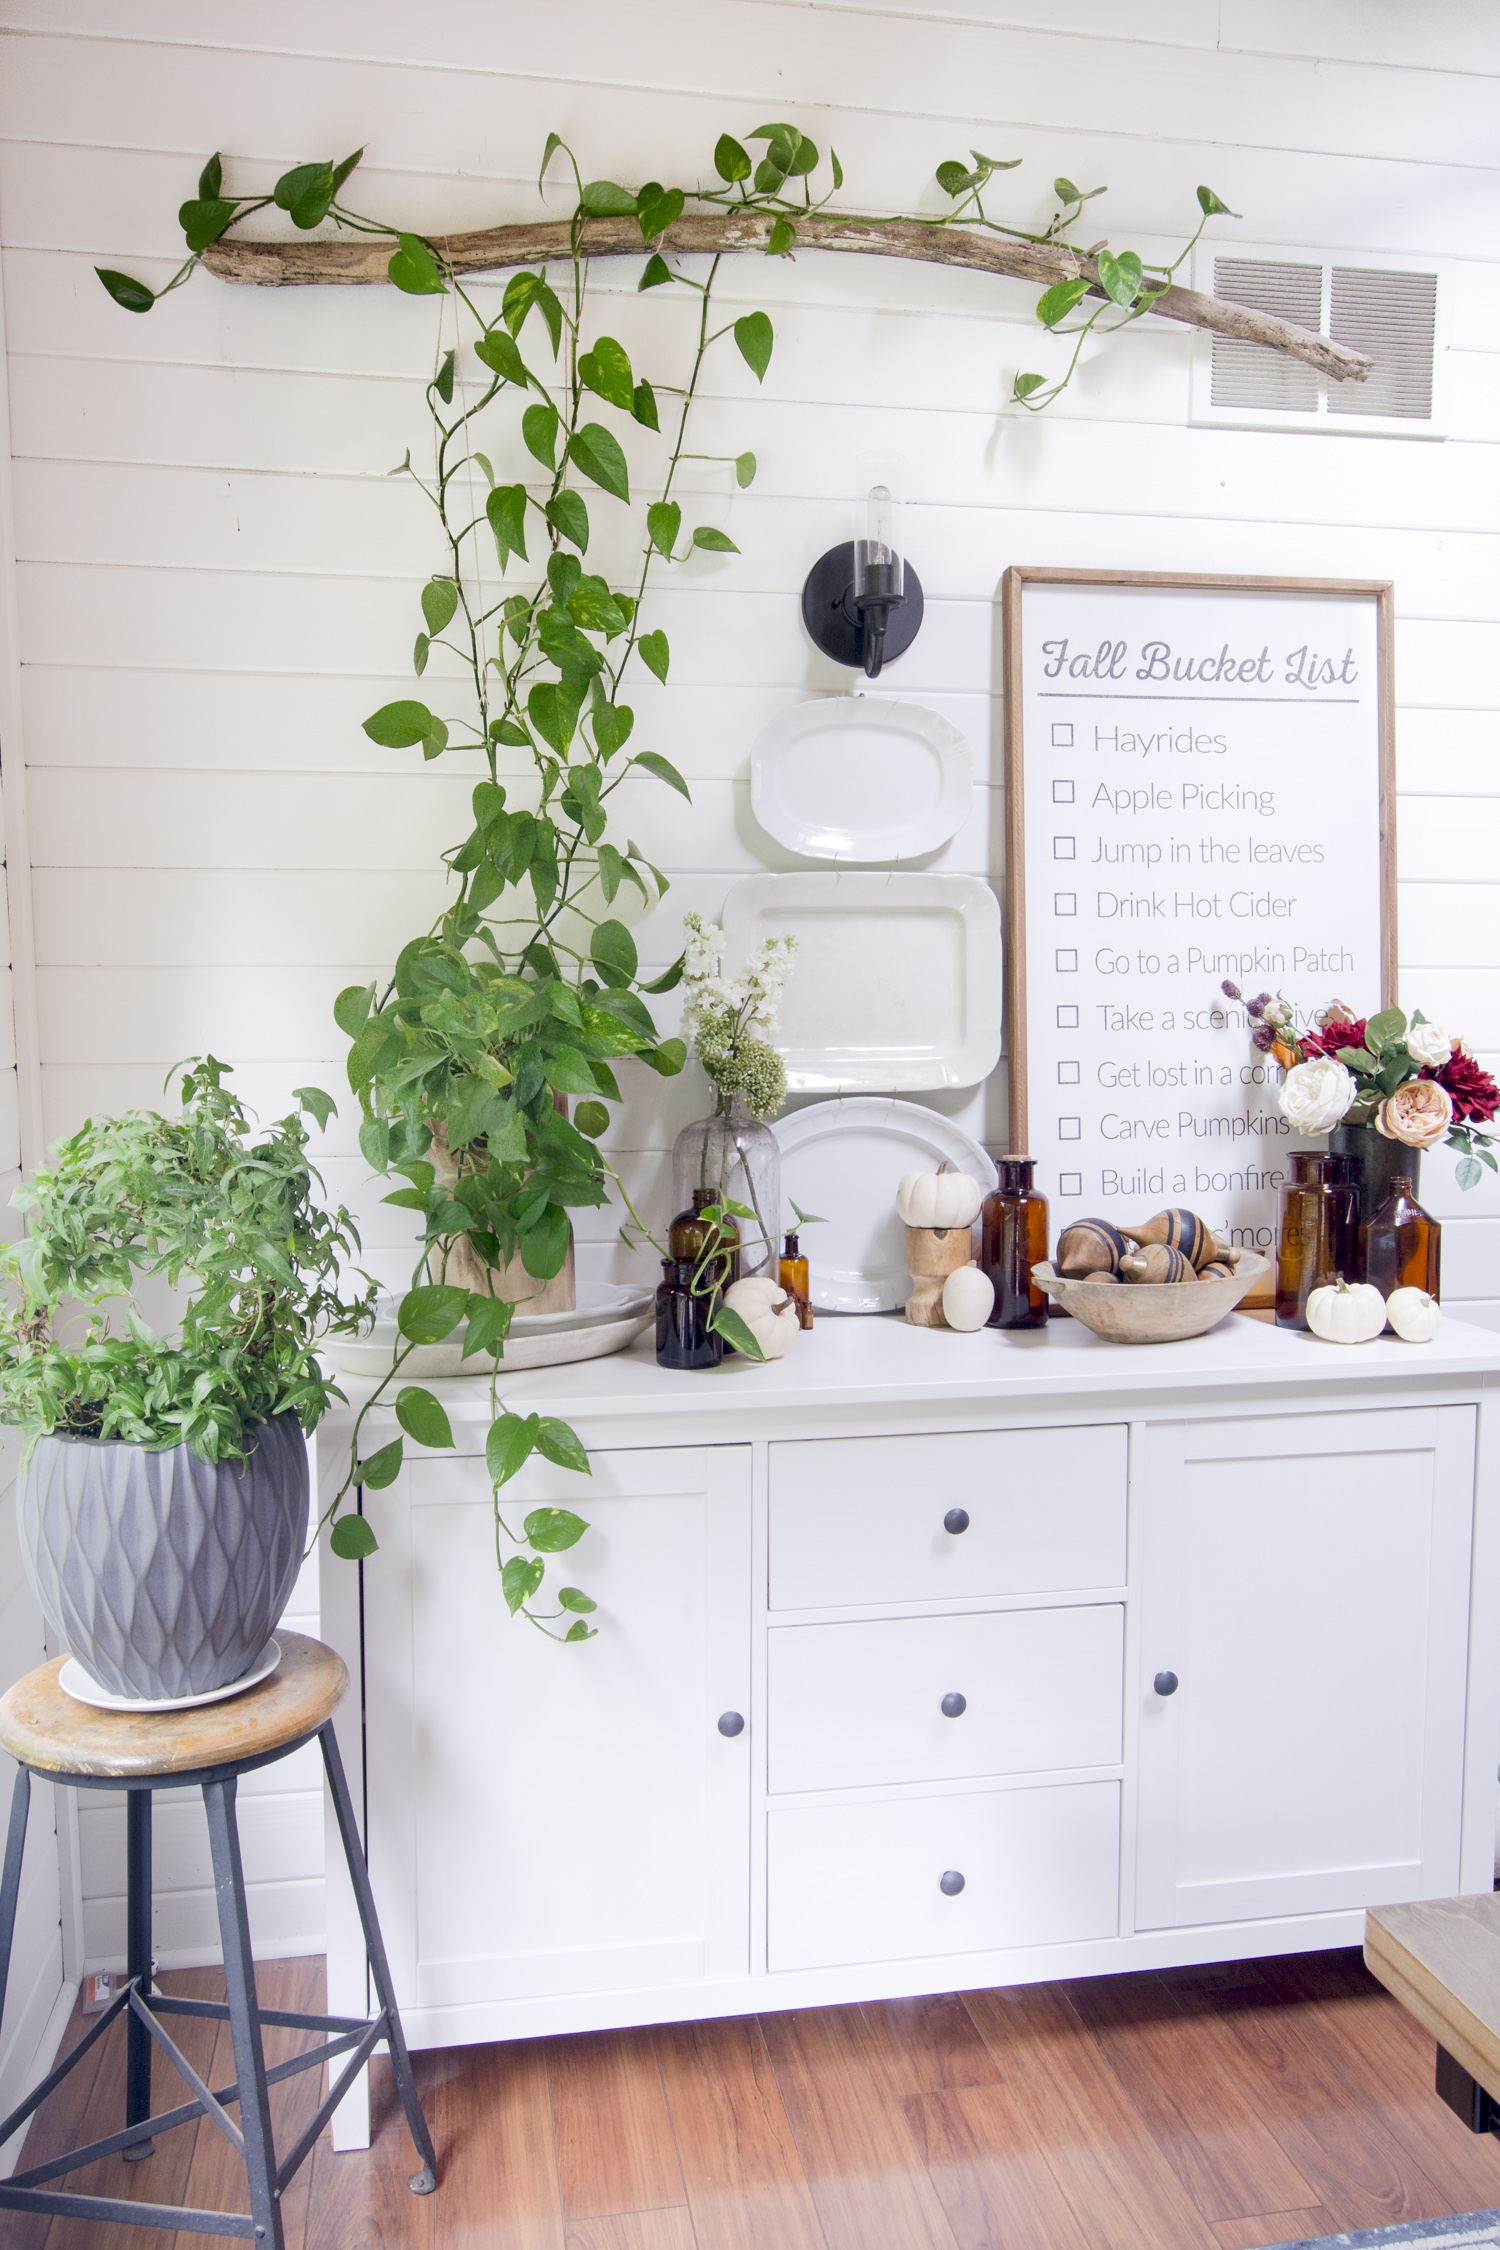 Train a pothos plant to grow up kellyelko.com #pothos #plants #houseplants #diningroomdecor #farmhousedecor